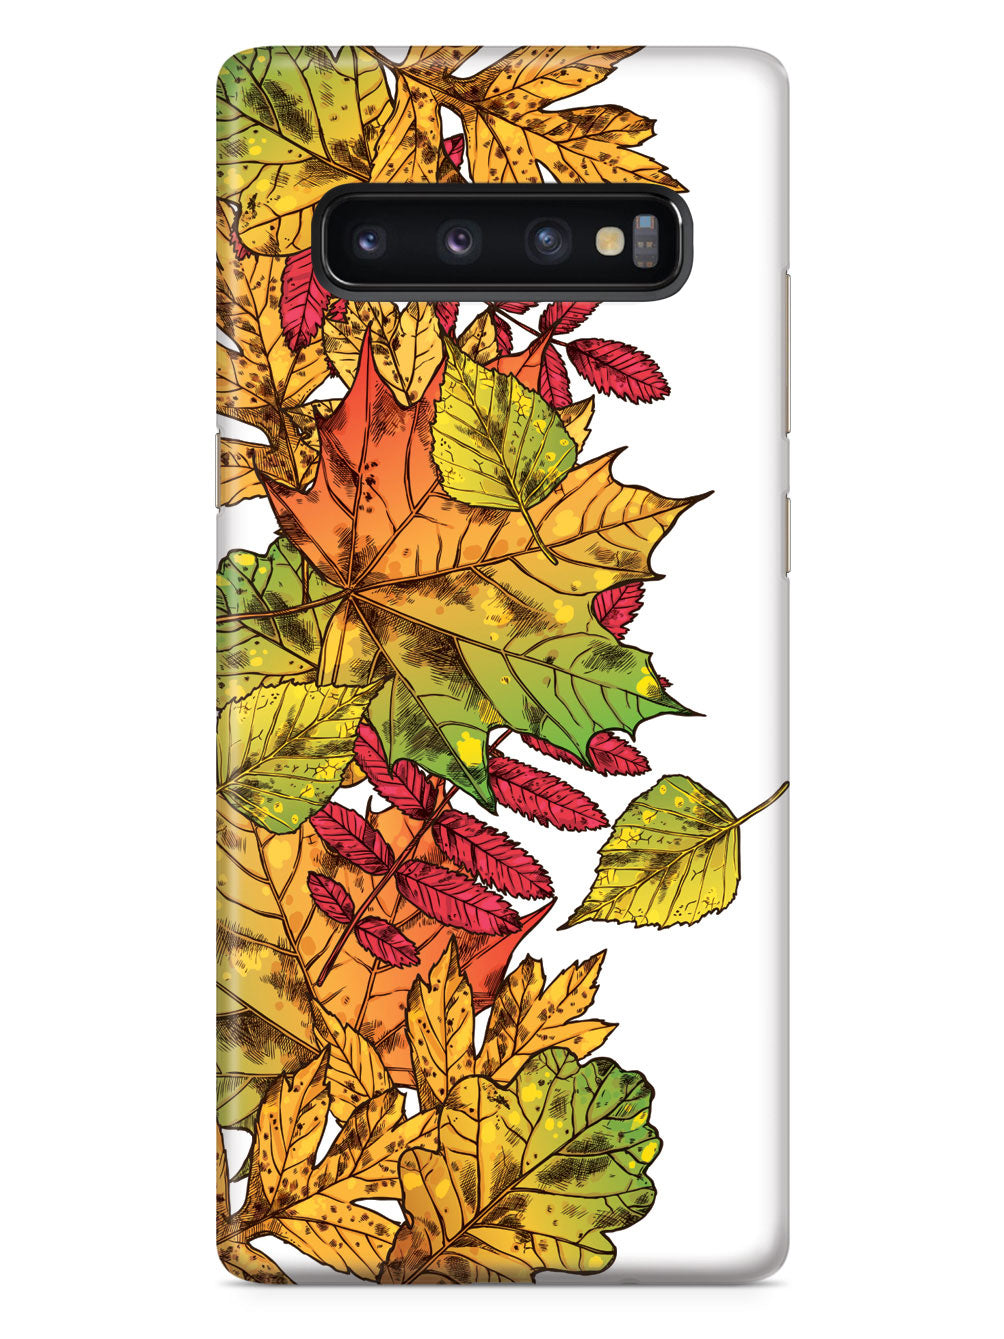 Autumn Leaves Illustration - White Case